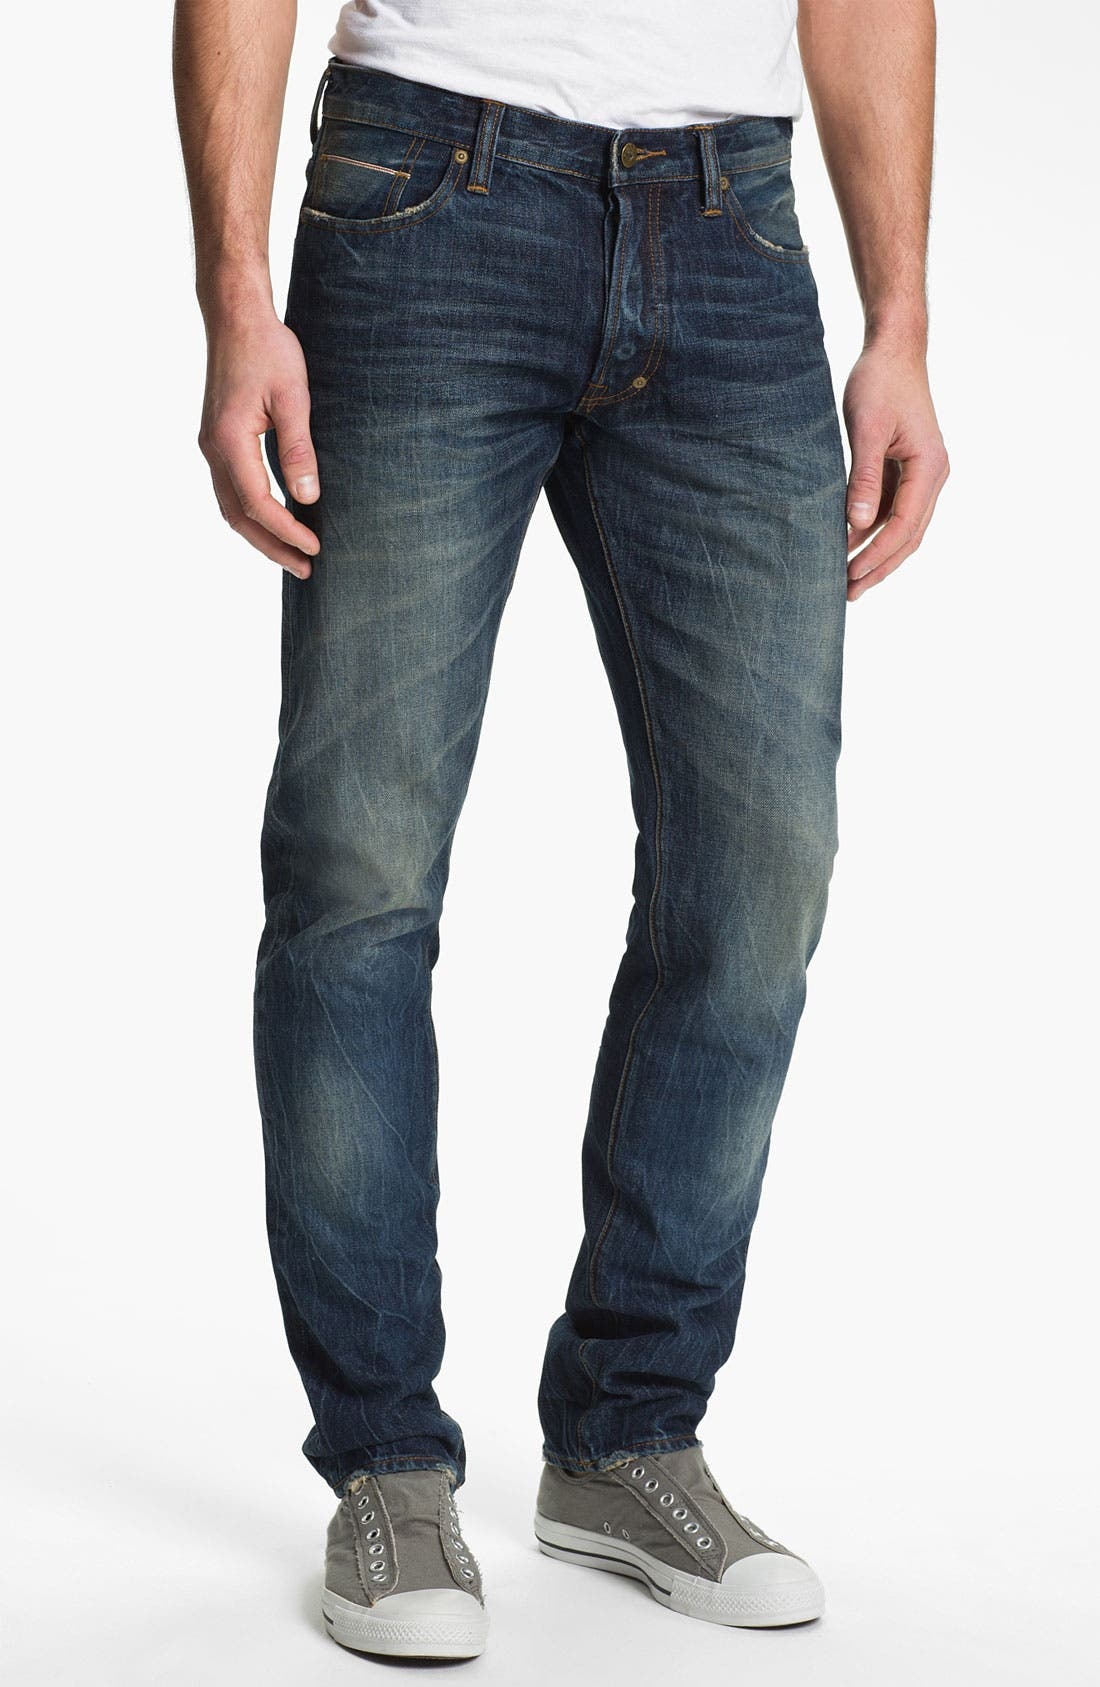 PRPS 'Barracuda' Straight Leg Selvedge Jeans (1 Year)